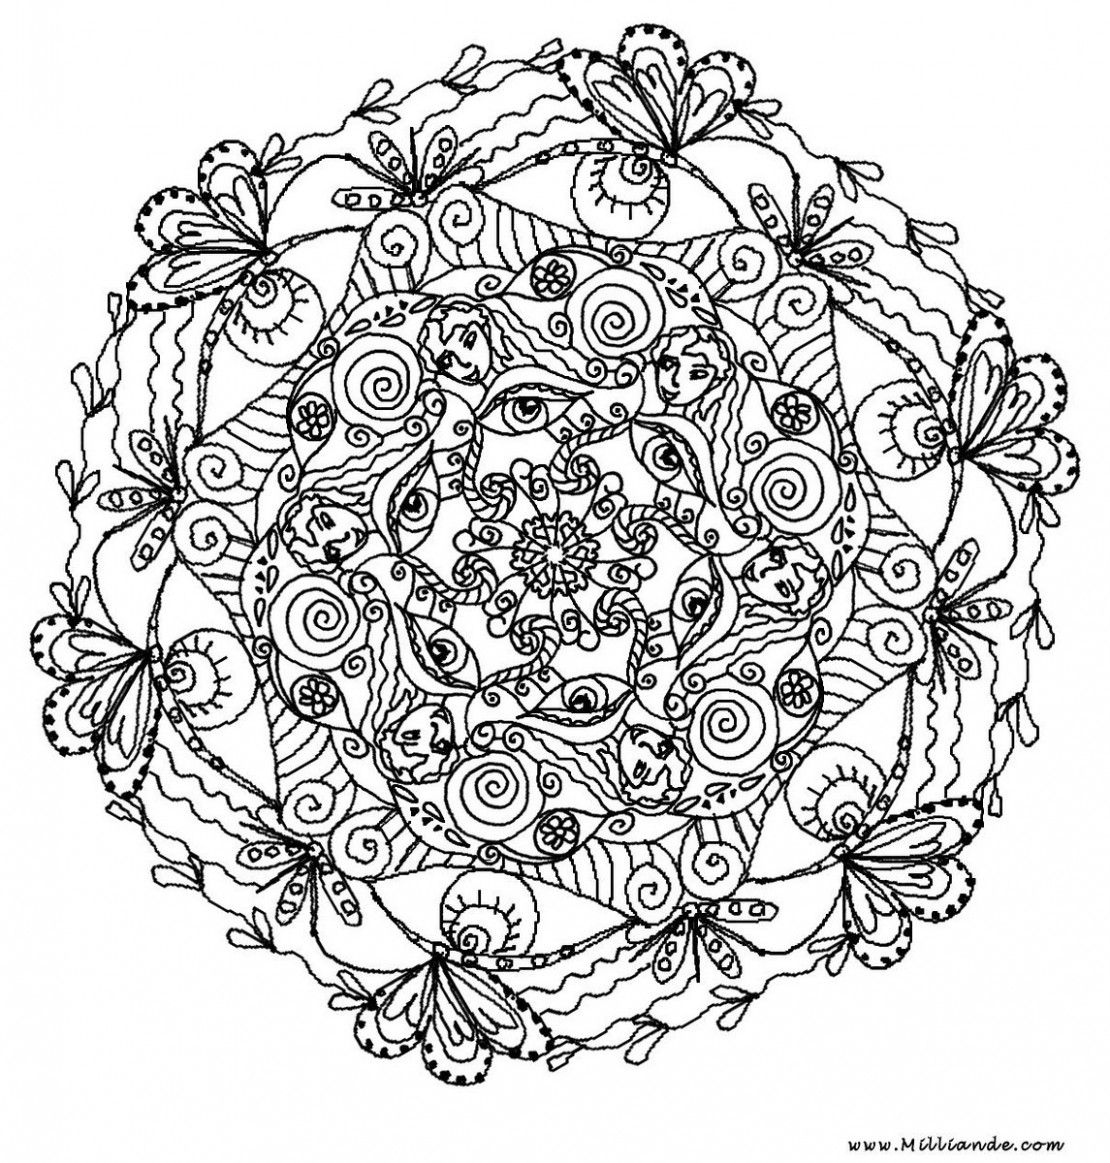 Flower coloring pages online free - Adult Printable Adult Flower Coloring Pages Printable Coloring